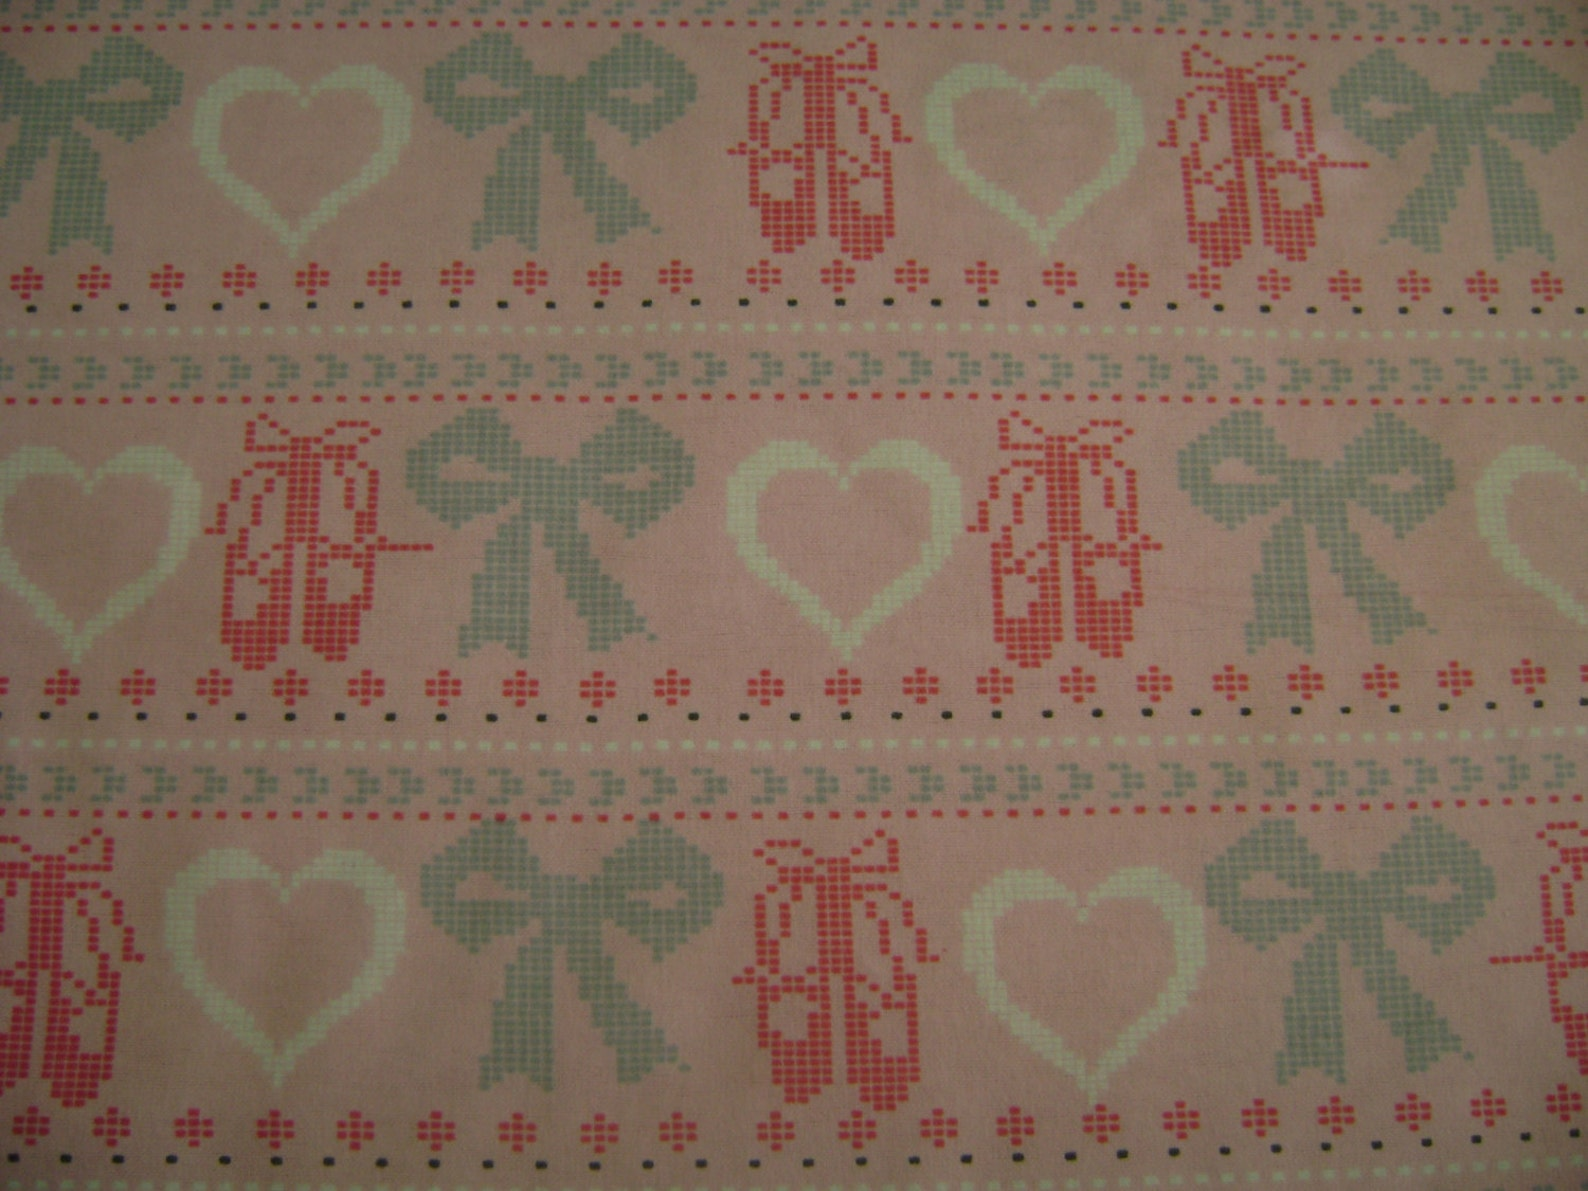 ballet shoes cross stitch flannel fabric (1 yard 4 inches)